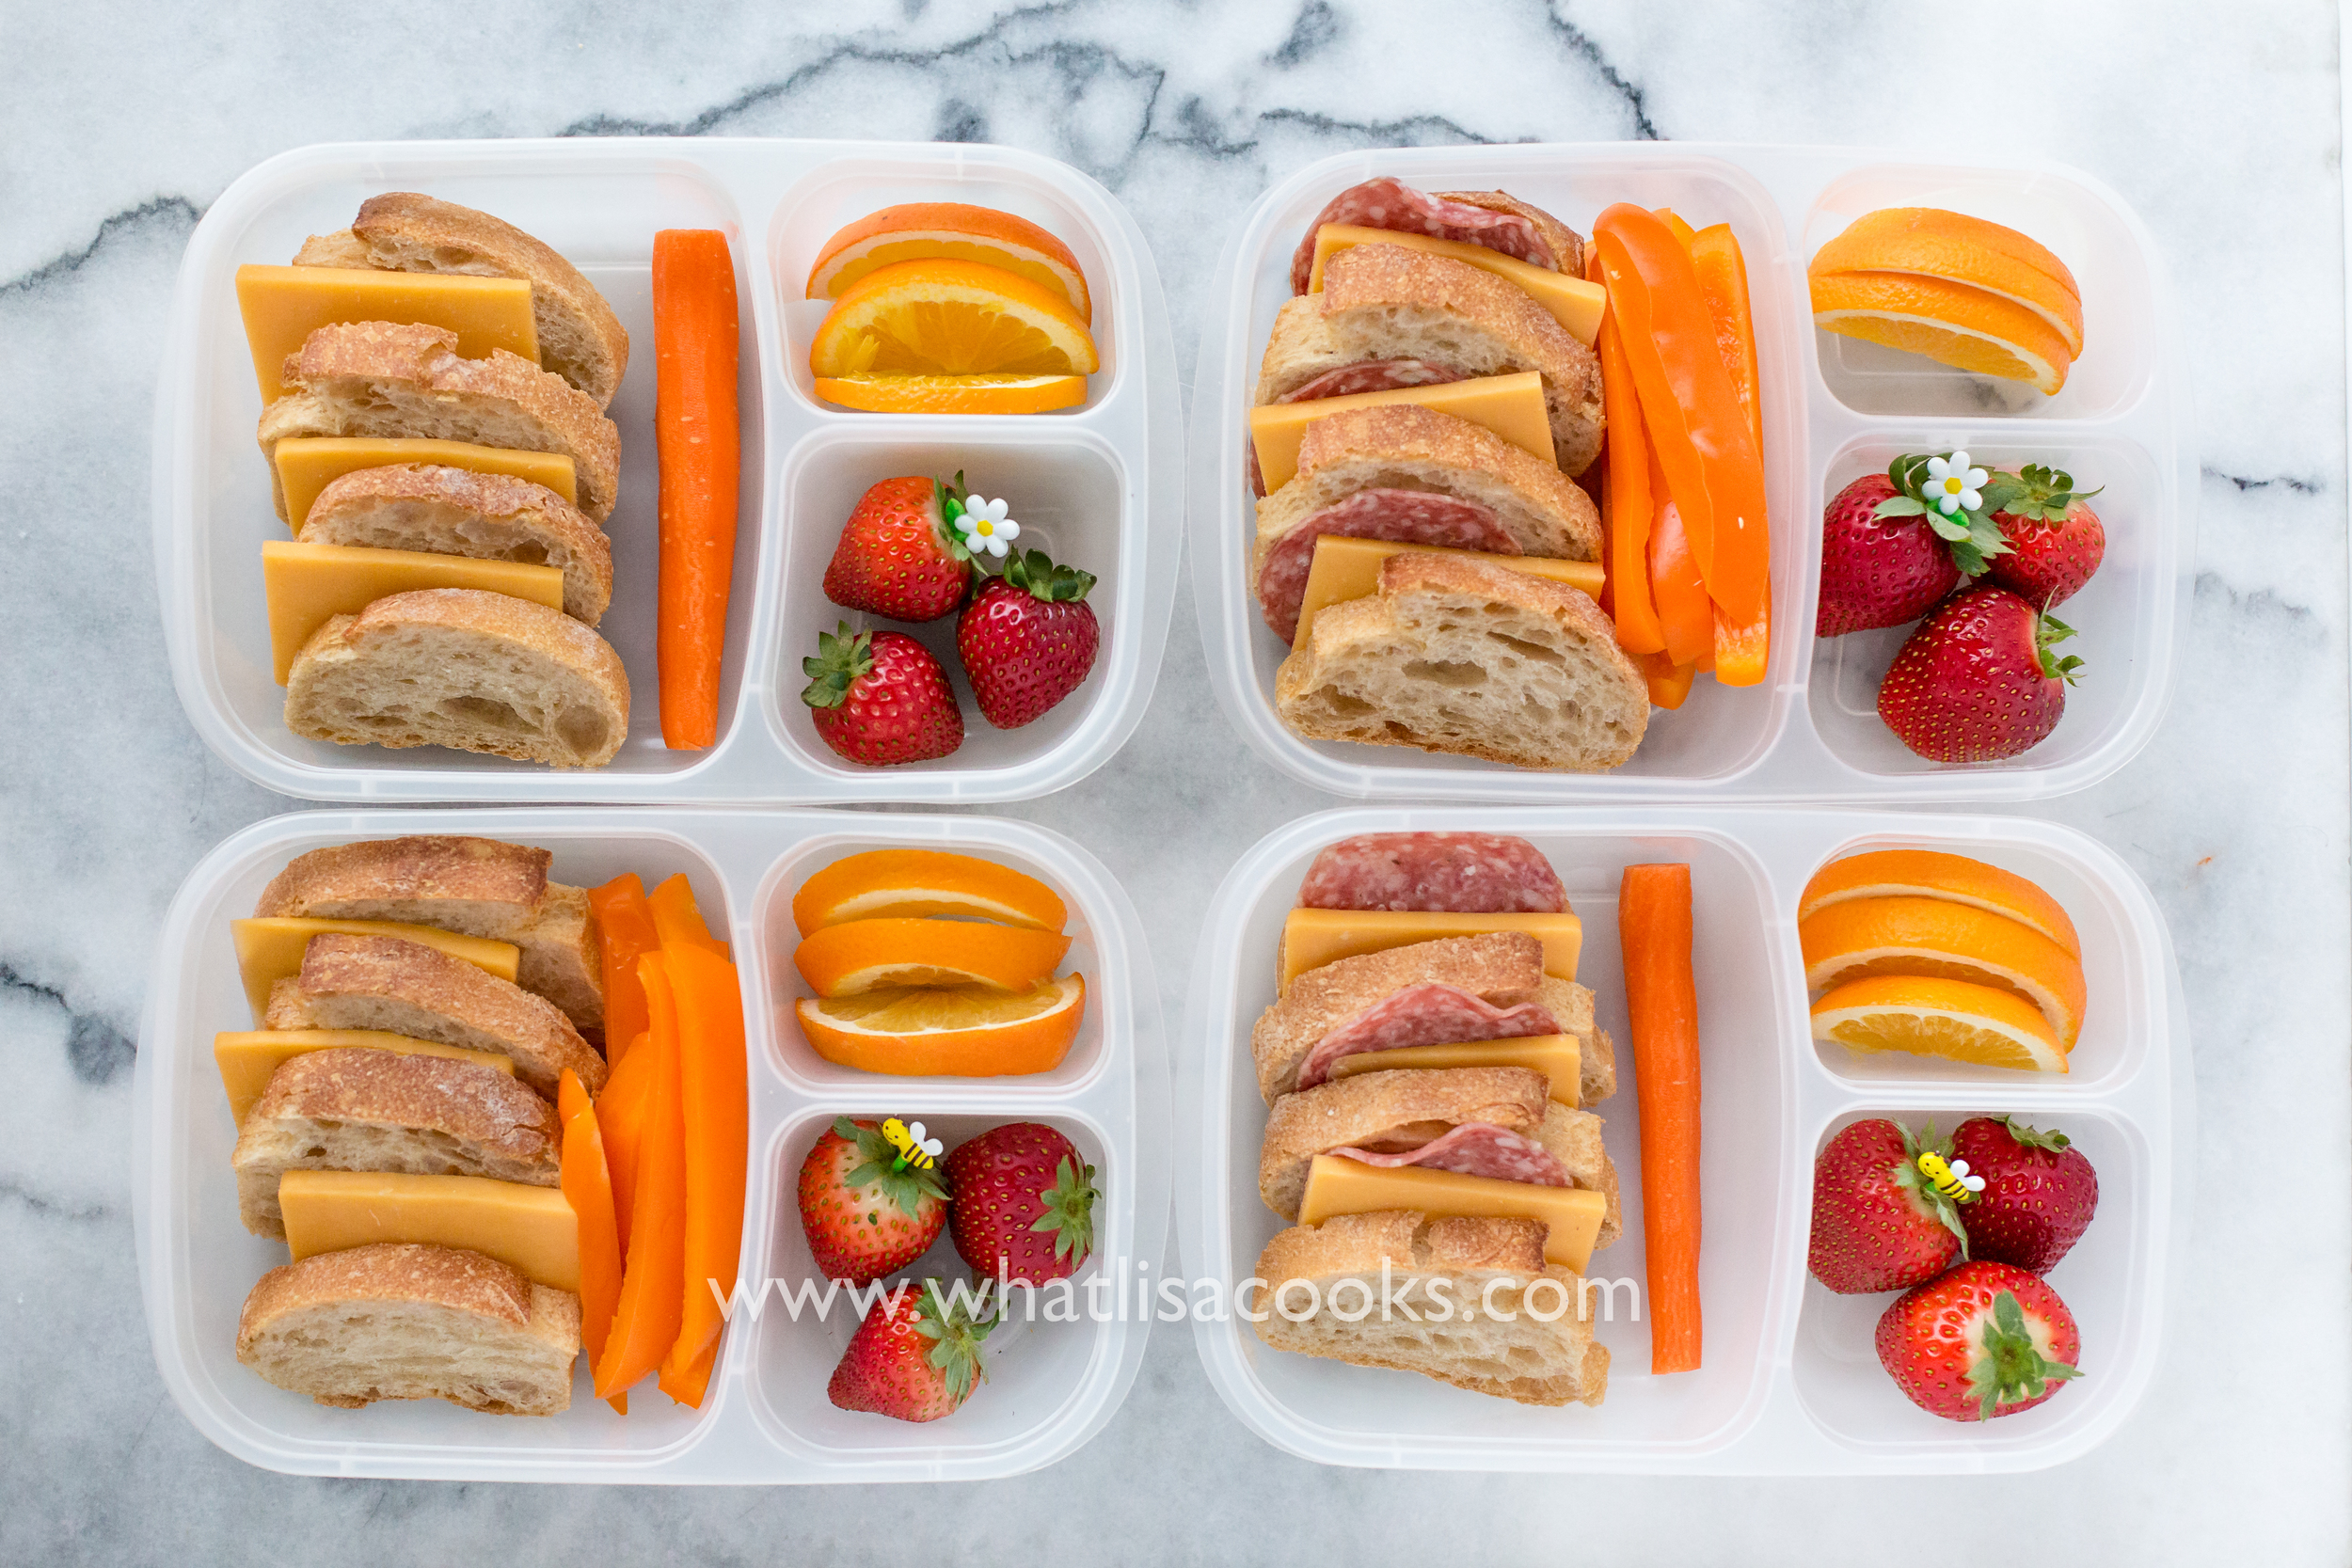 School Lunch Day 59 - from WhatLisaCooks.com